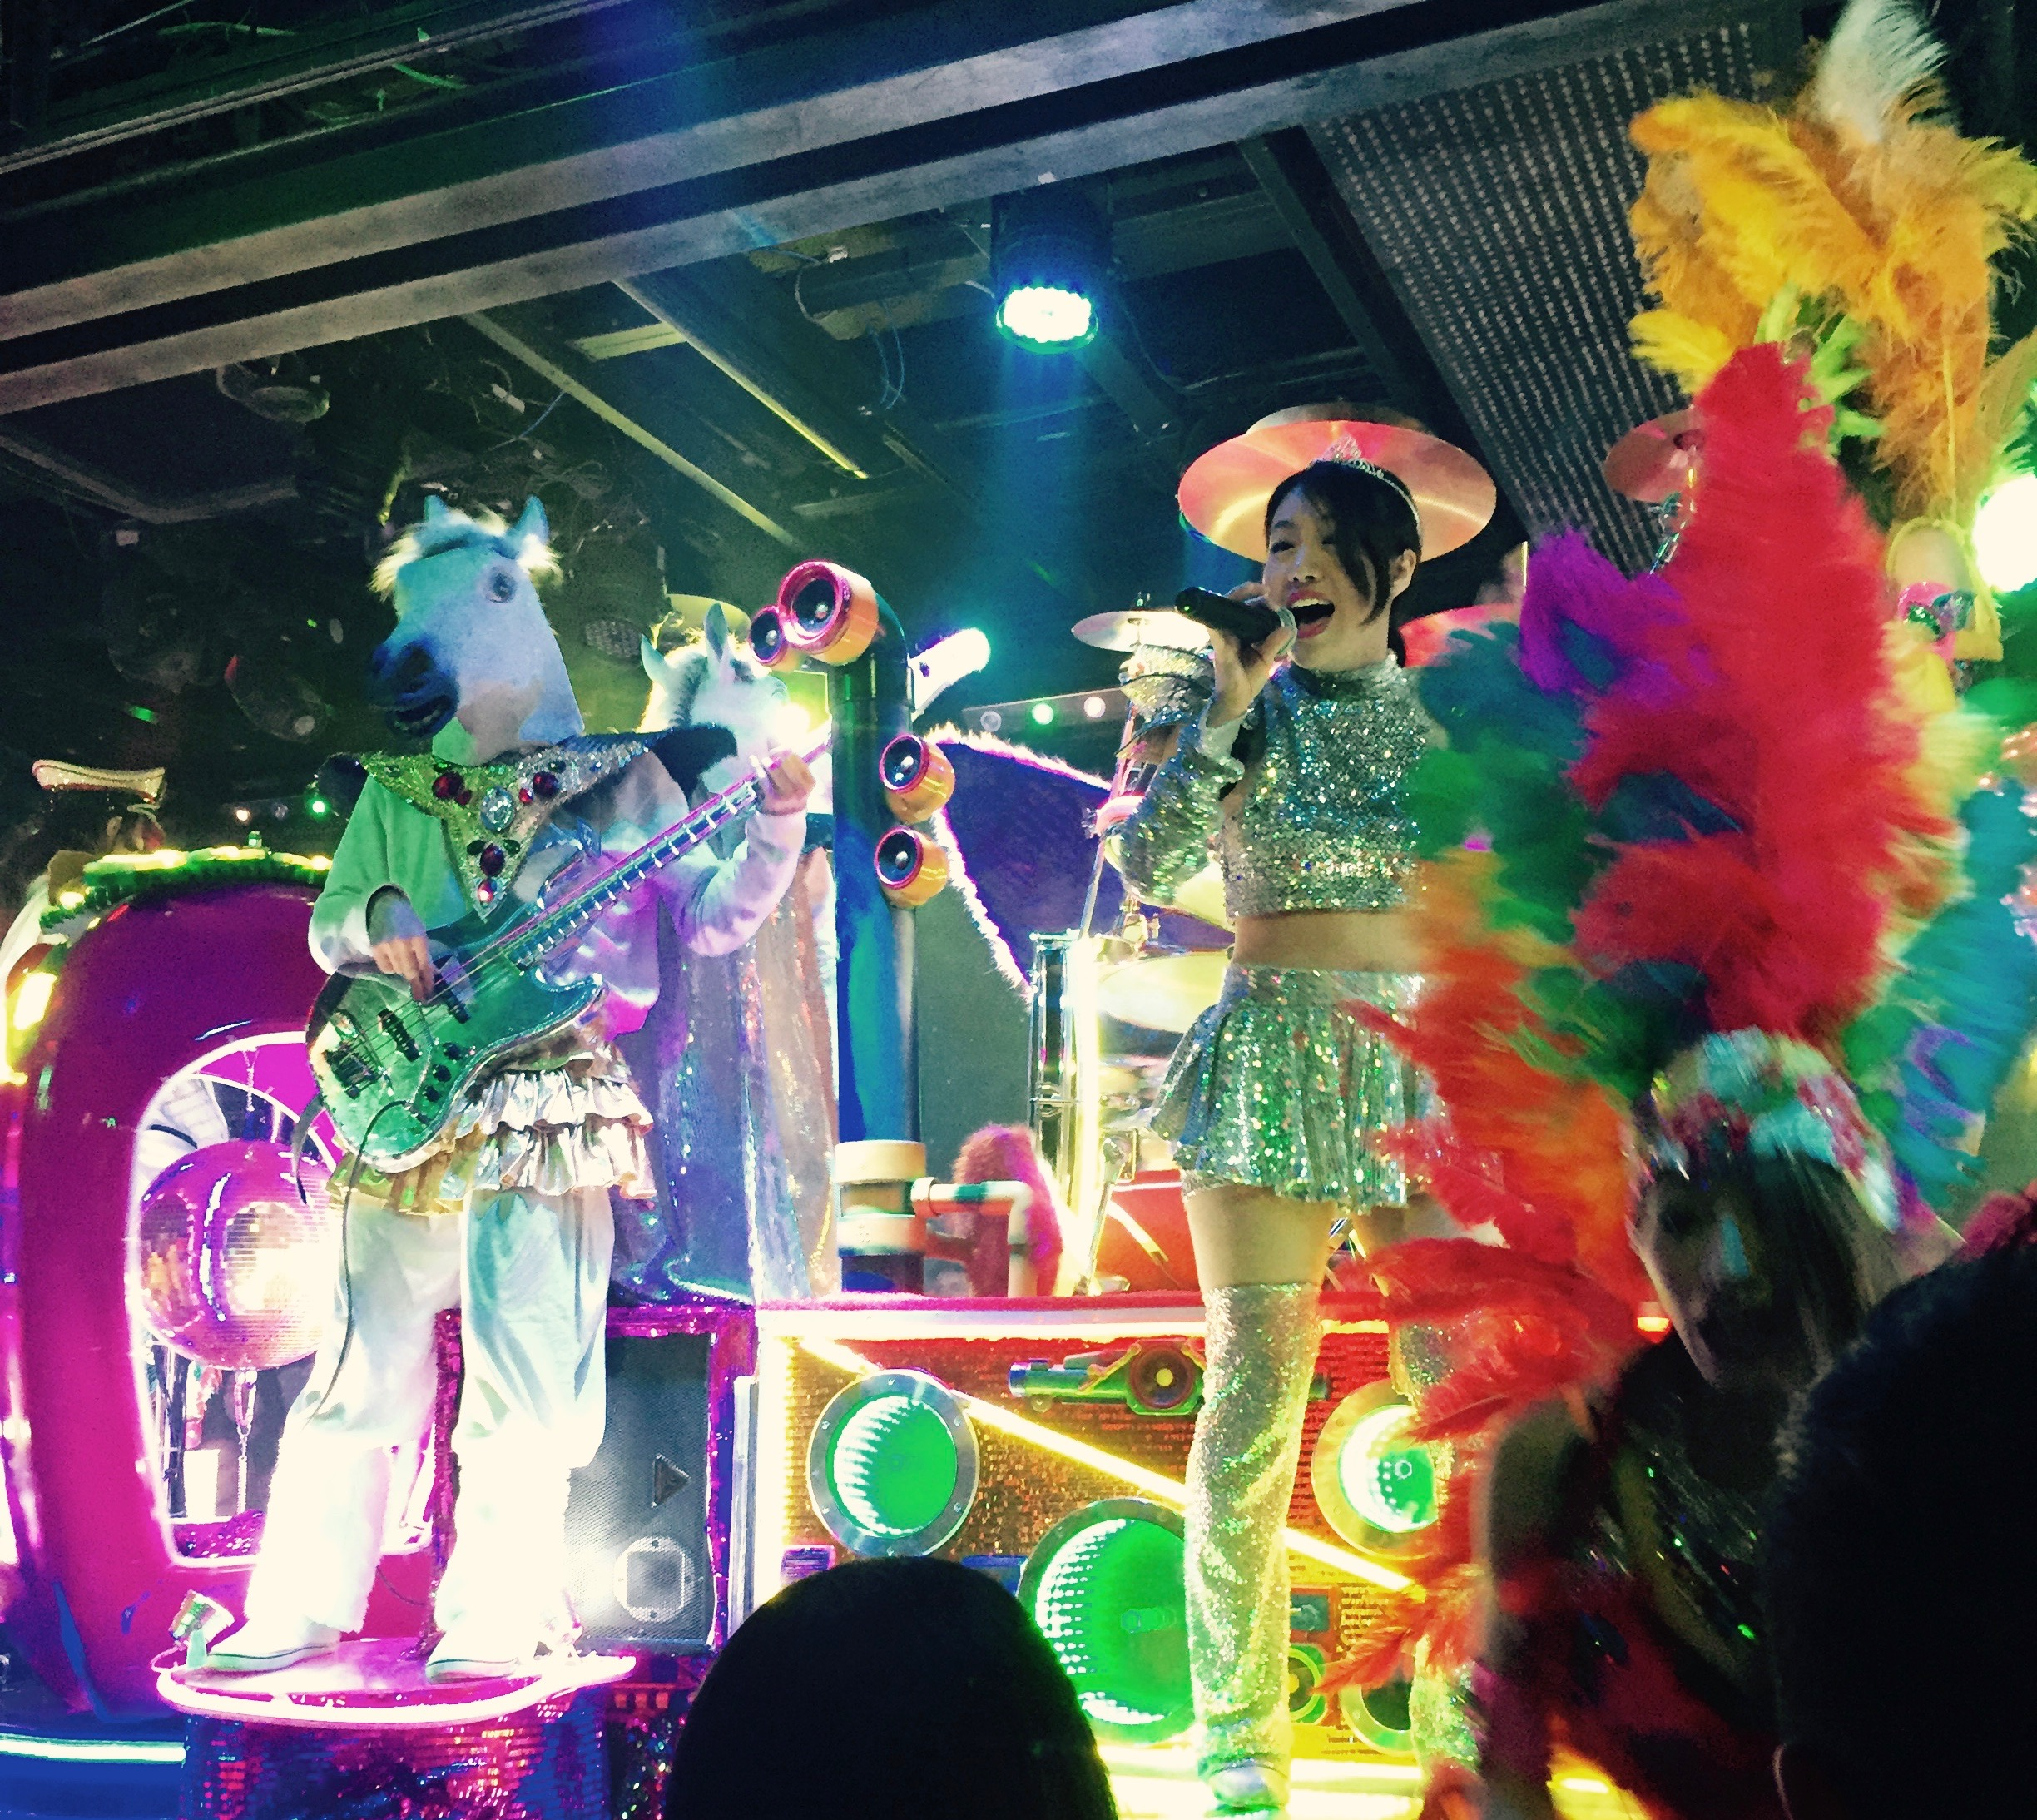 Lauren wanted to visit the Robot Restaurant, which I was unfamiliar with, but I'm so glad we went. It was an epic event of color, light, lasers, dancing girls and of course Robots.